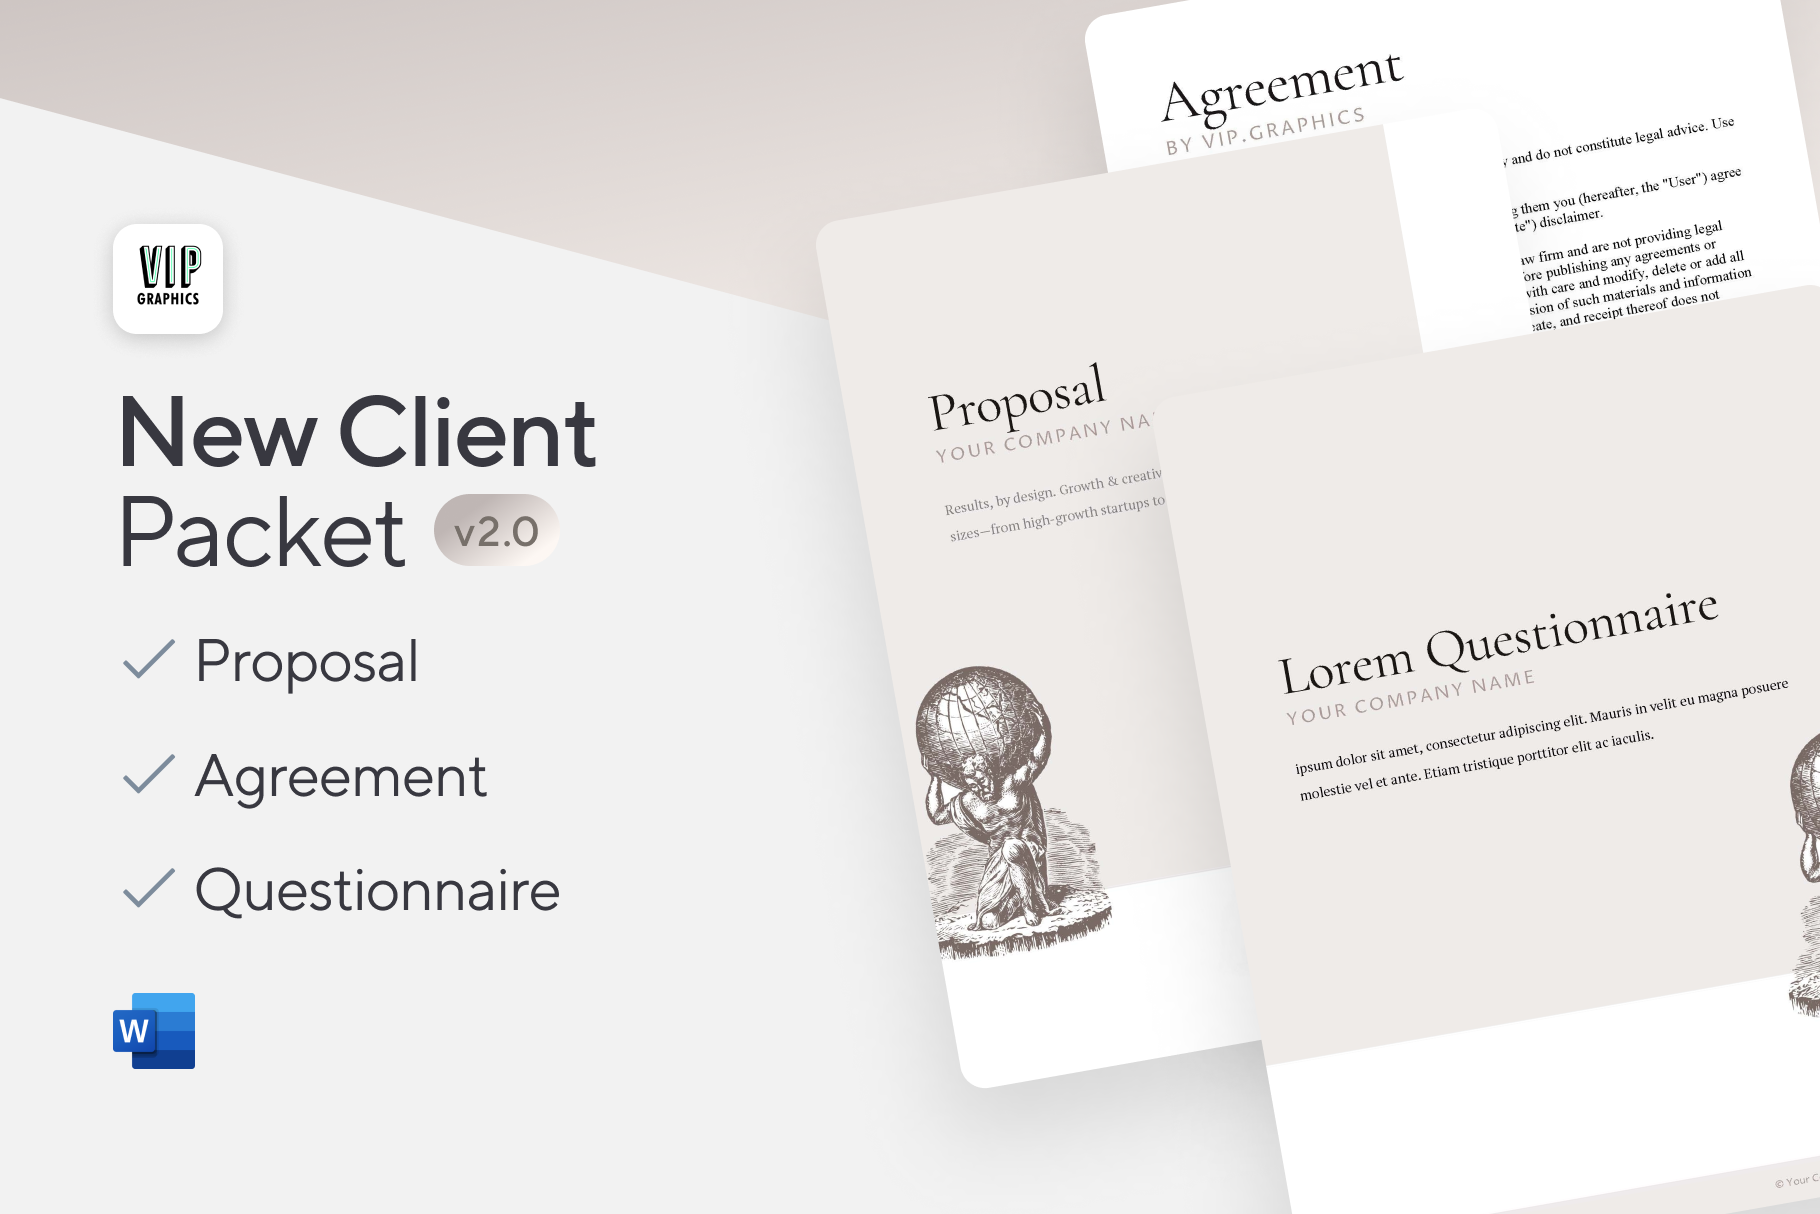 New Client Welcome Kit: Onboard new clients like a pro: templates for proposals, questionnaires & agreements.